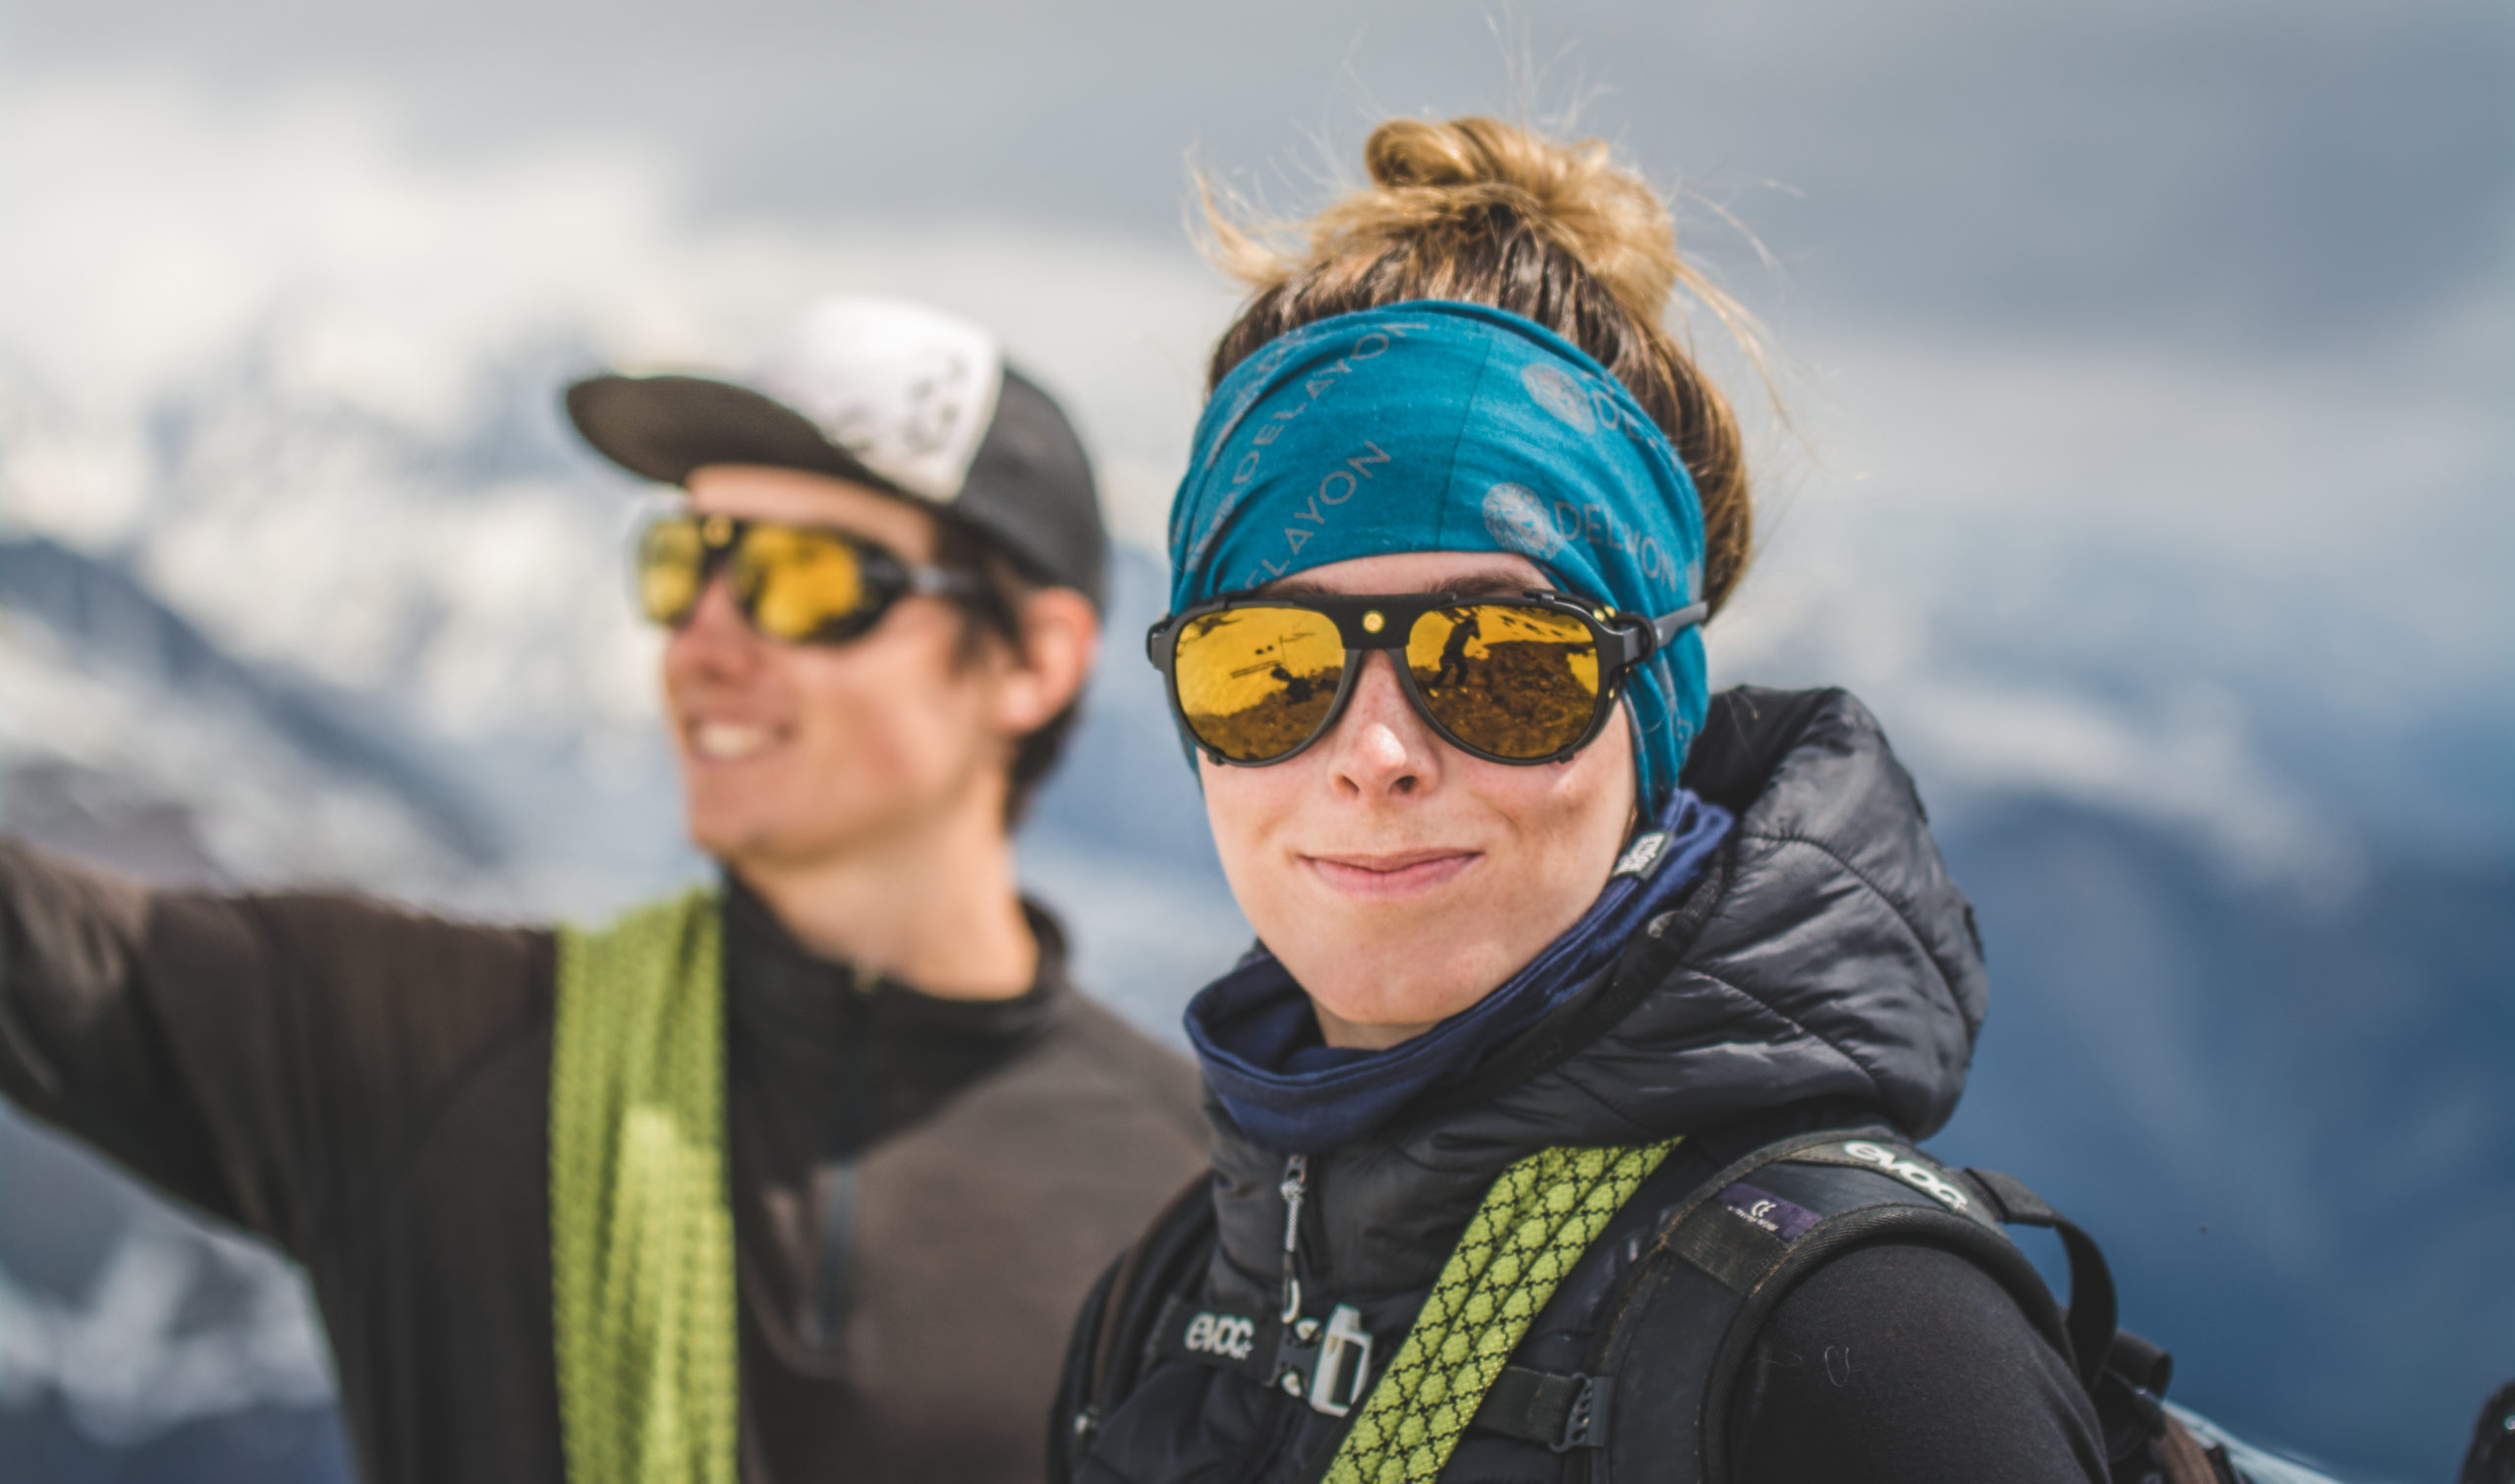 The new couloir sunglasses make you smile